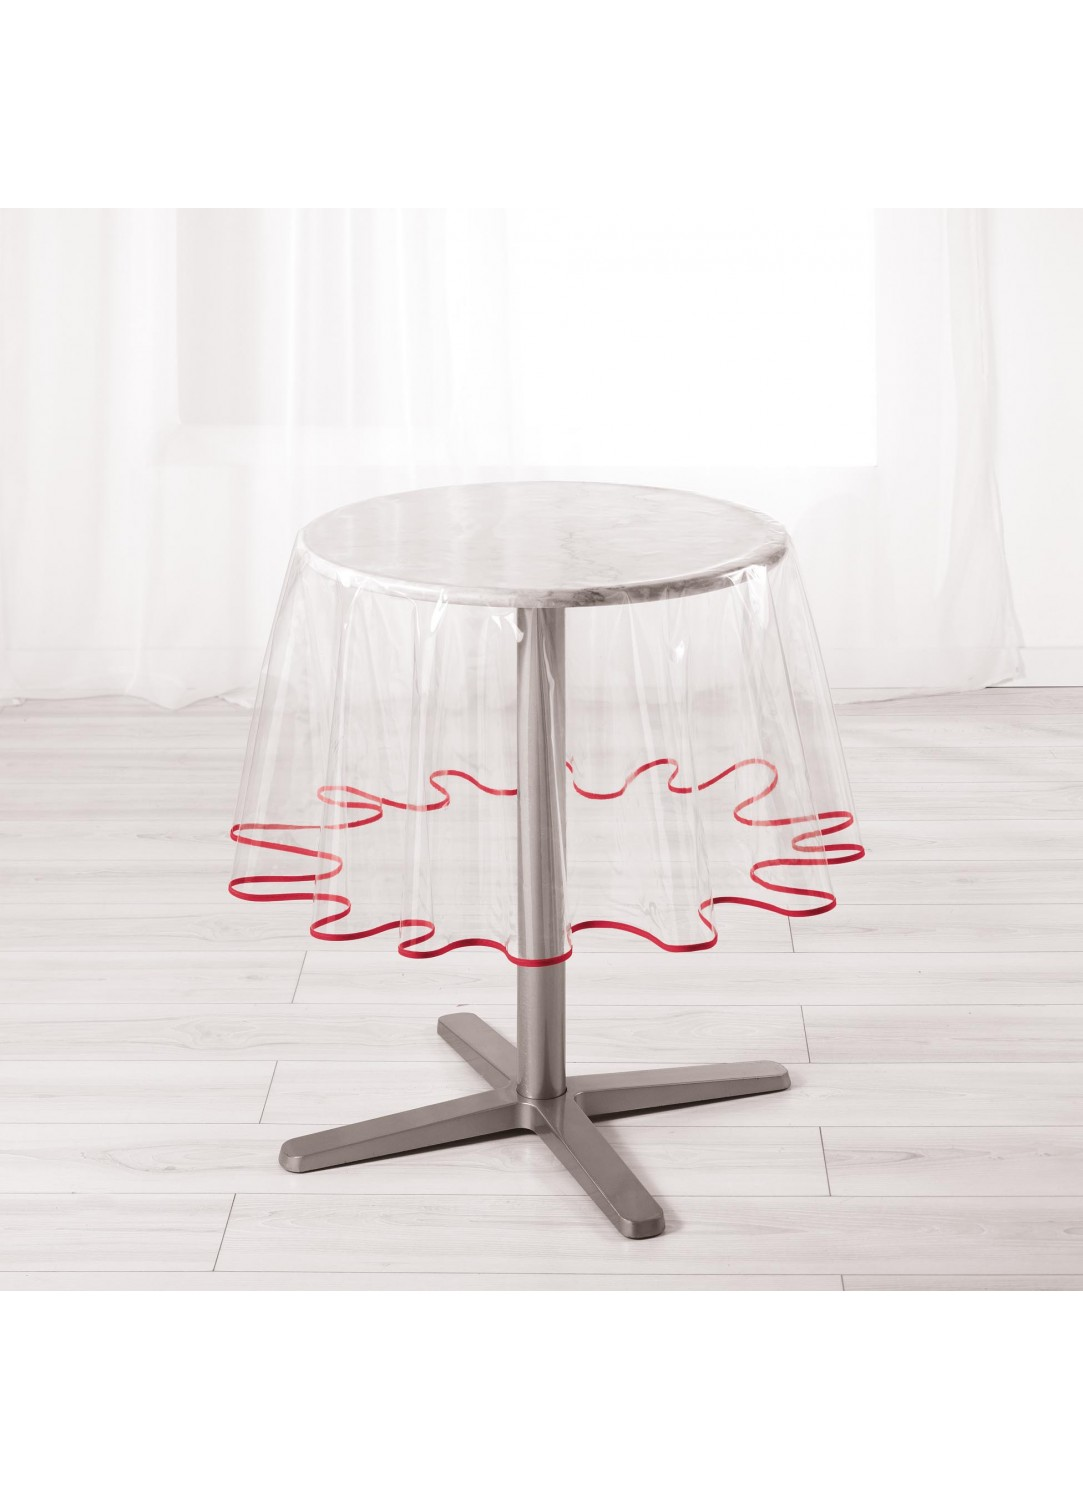 nappe ronde pvc transparent avec biais color rouge. Black Bedroom Furniture Sets. Home Design Ideas